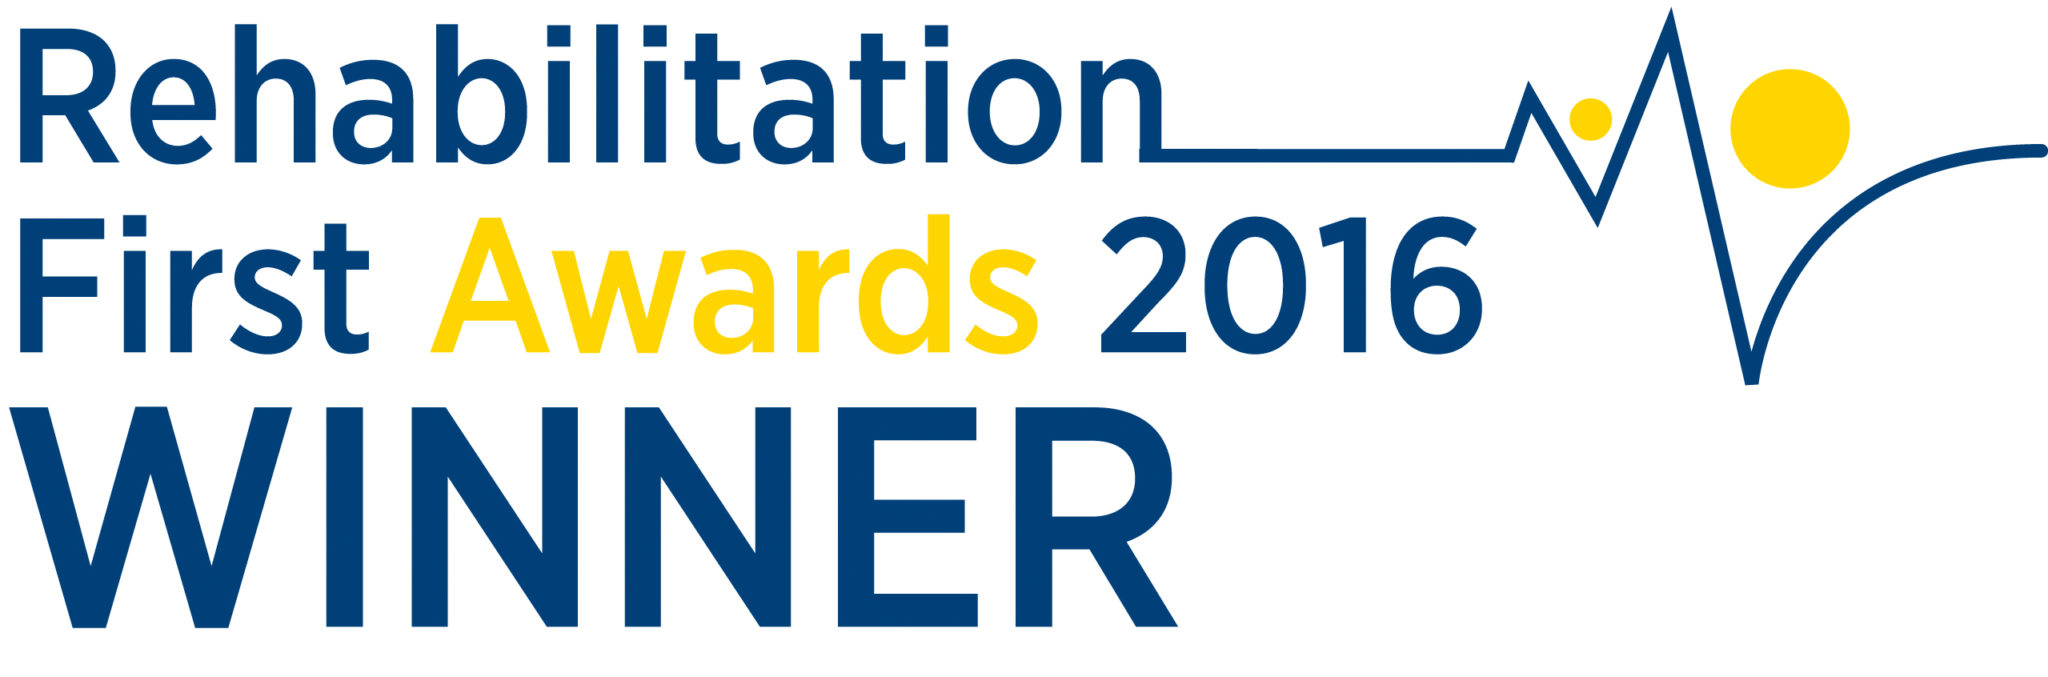 Rehabilitation First Awards 2016 WINNER